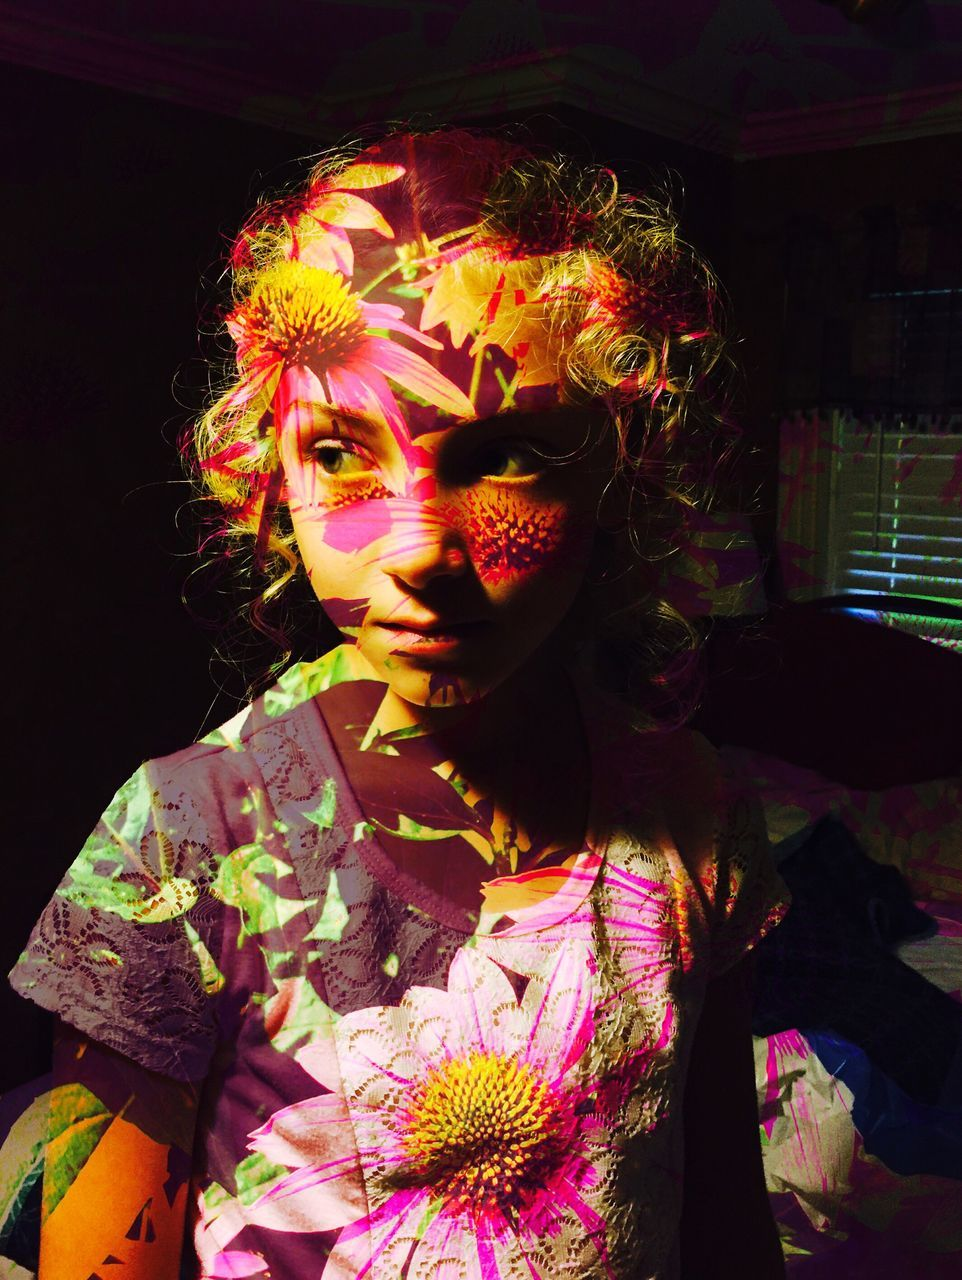 Double Exposure Of Pink Flowering Plant And Girl